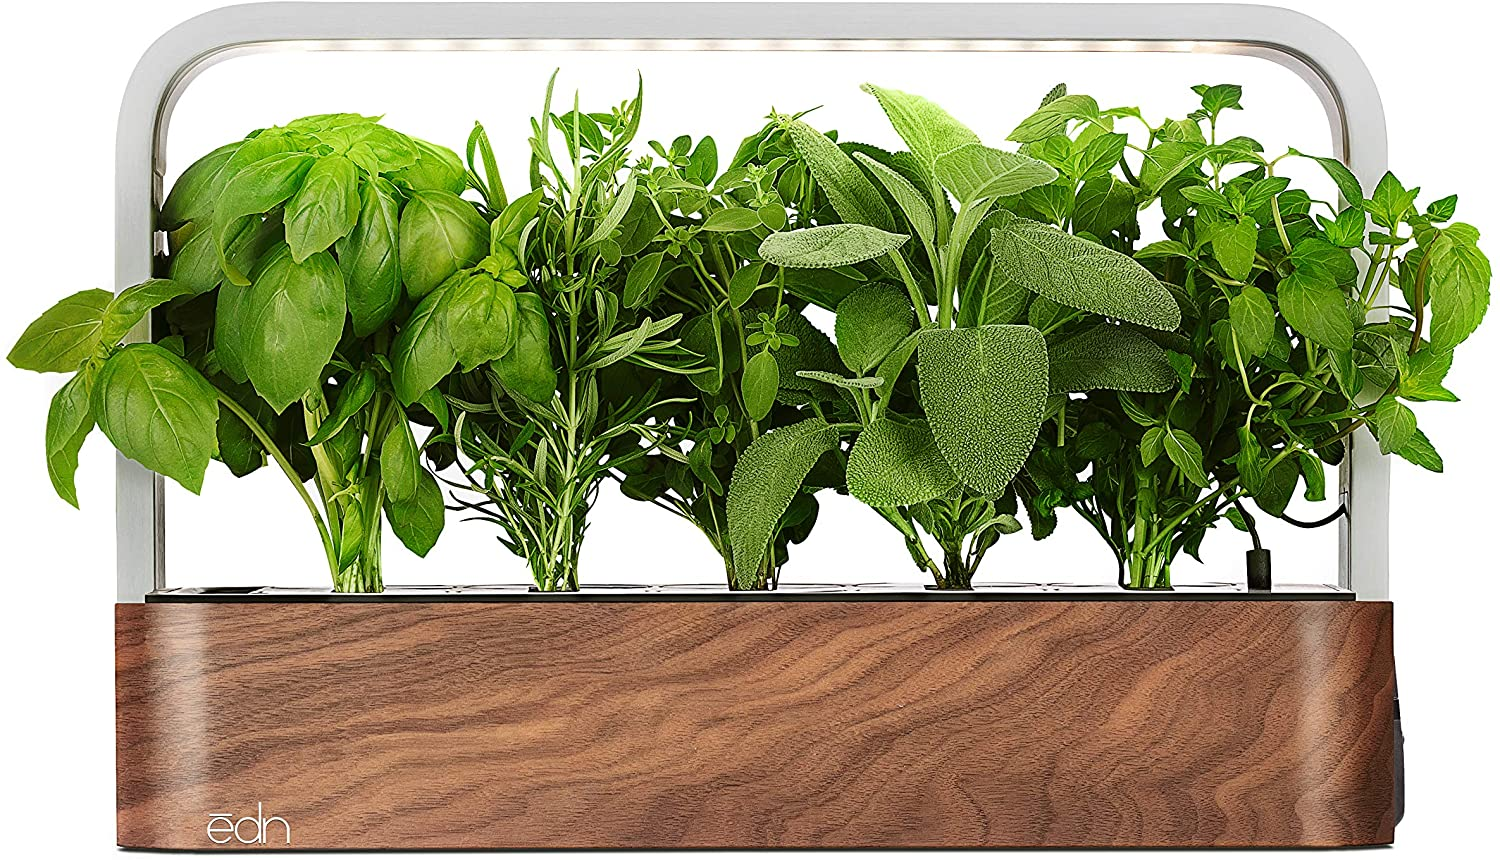 edn SmallGarden with Basil SeedPods, Indoor Grow Smart Garden Starter Kit for Fresh Home Grown Herbs, Plants and Flowers Roll over image to zoom in VIDEO edn SmallGarden